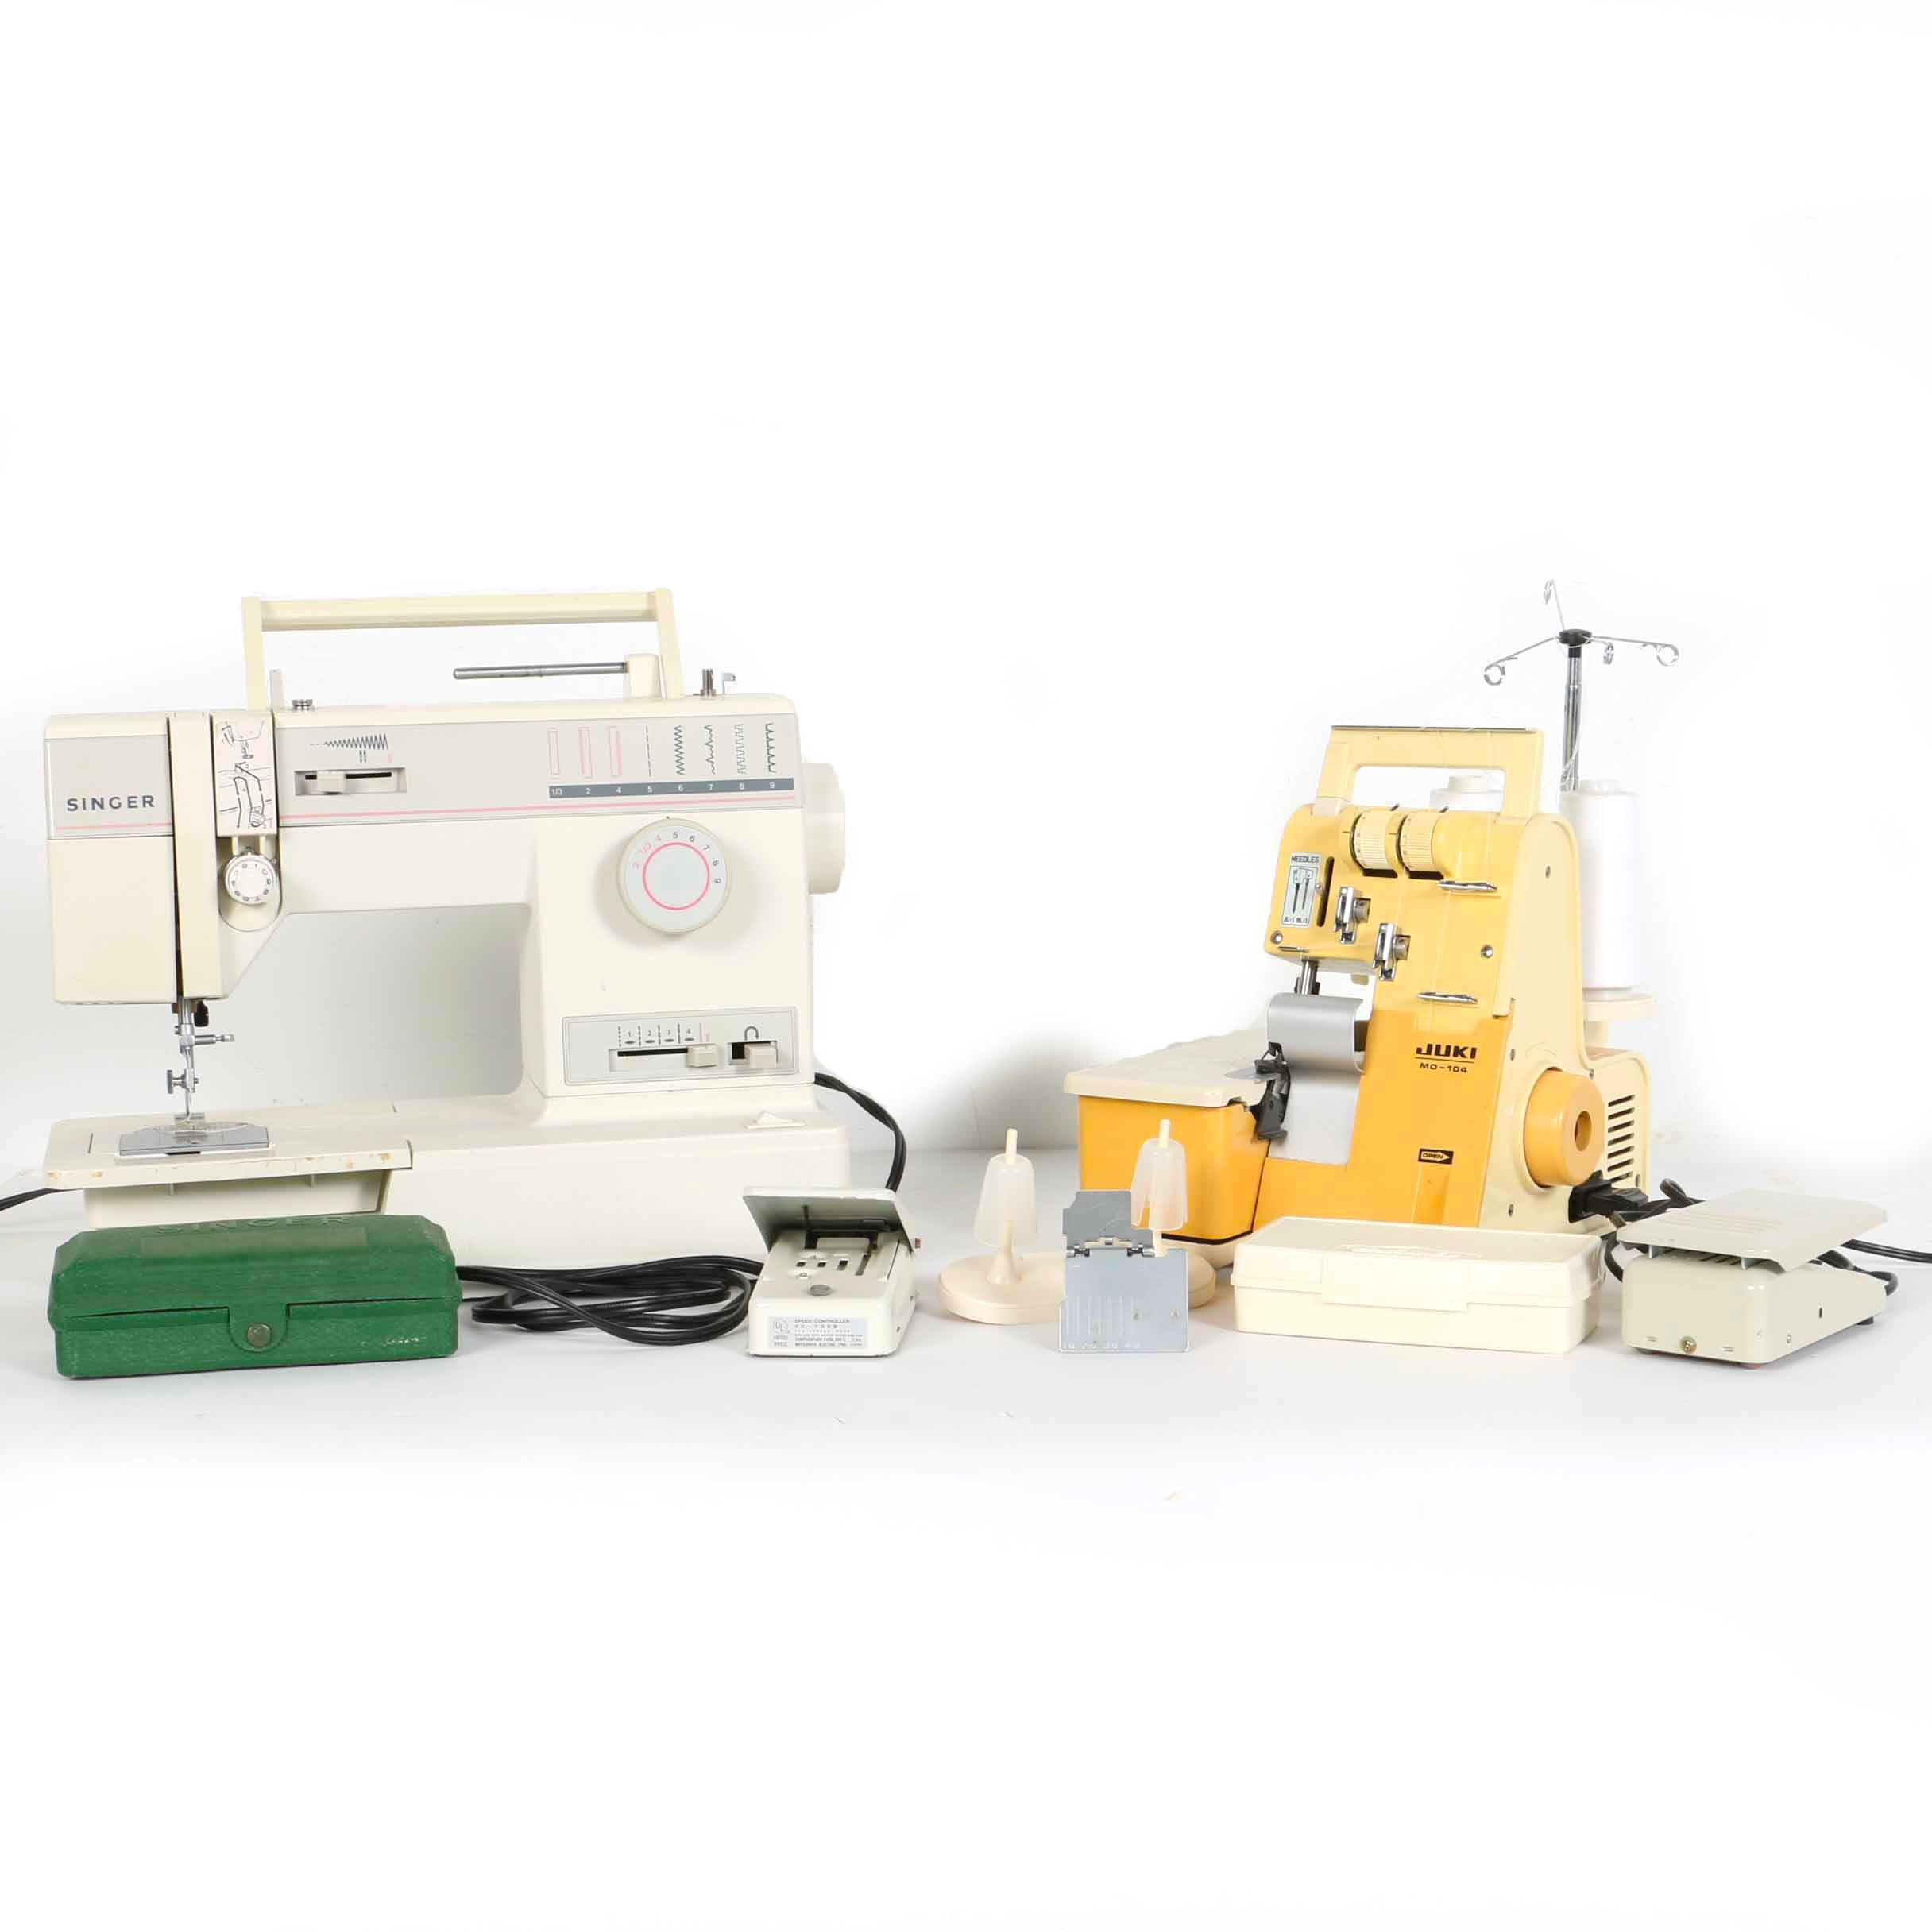 Singer and Juki Sewing Machines and Notions